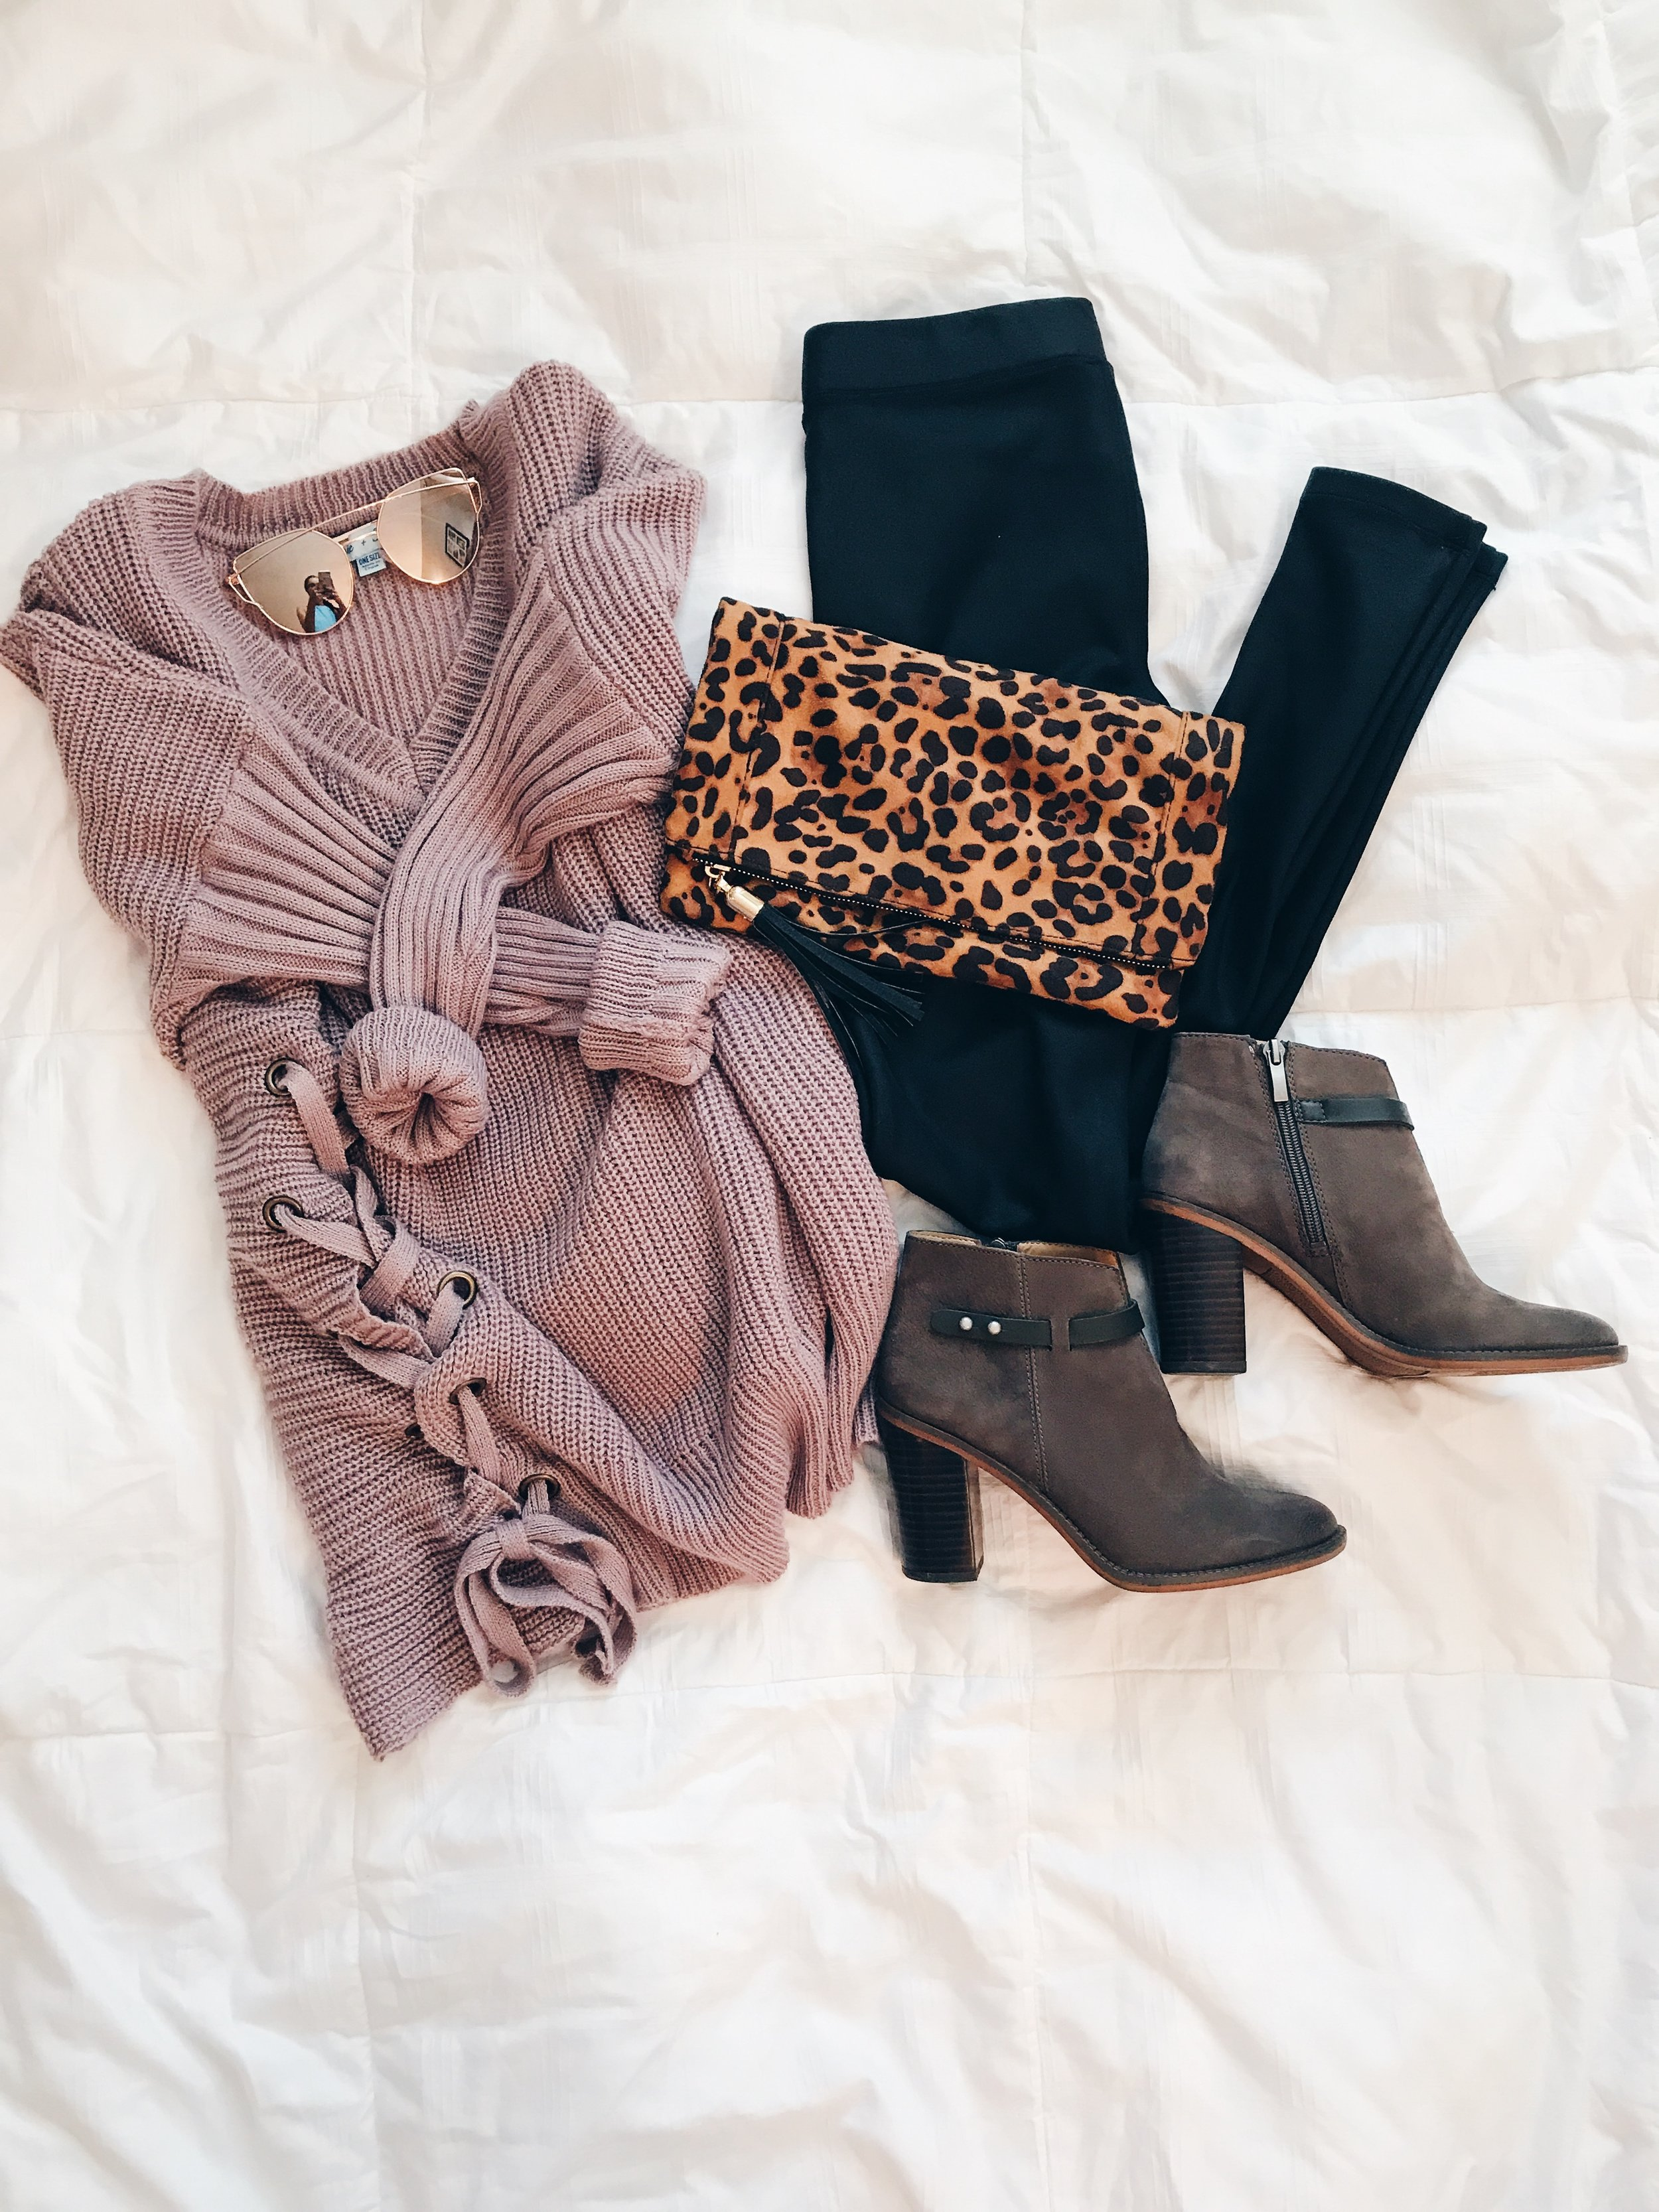 - Sweater || Leather Leggings || Booties || Clutch || Sunglasses*Use the code trendyinindy15 for 15% off your purchase at Sweet Olive.